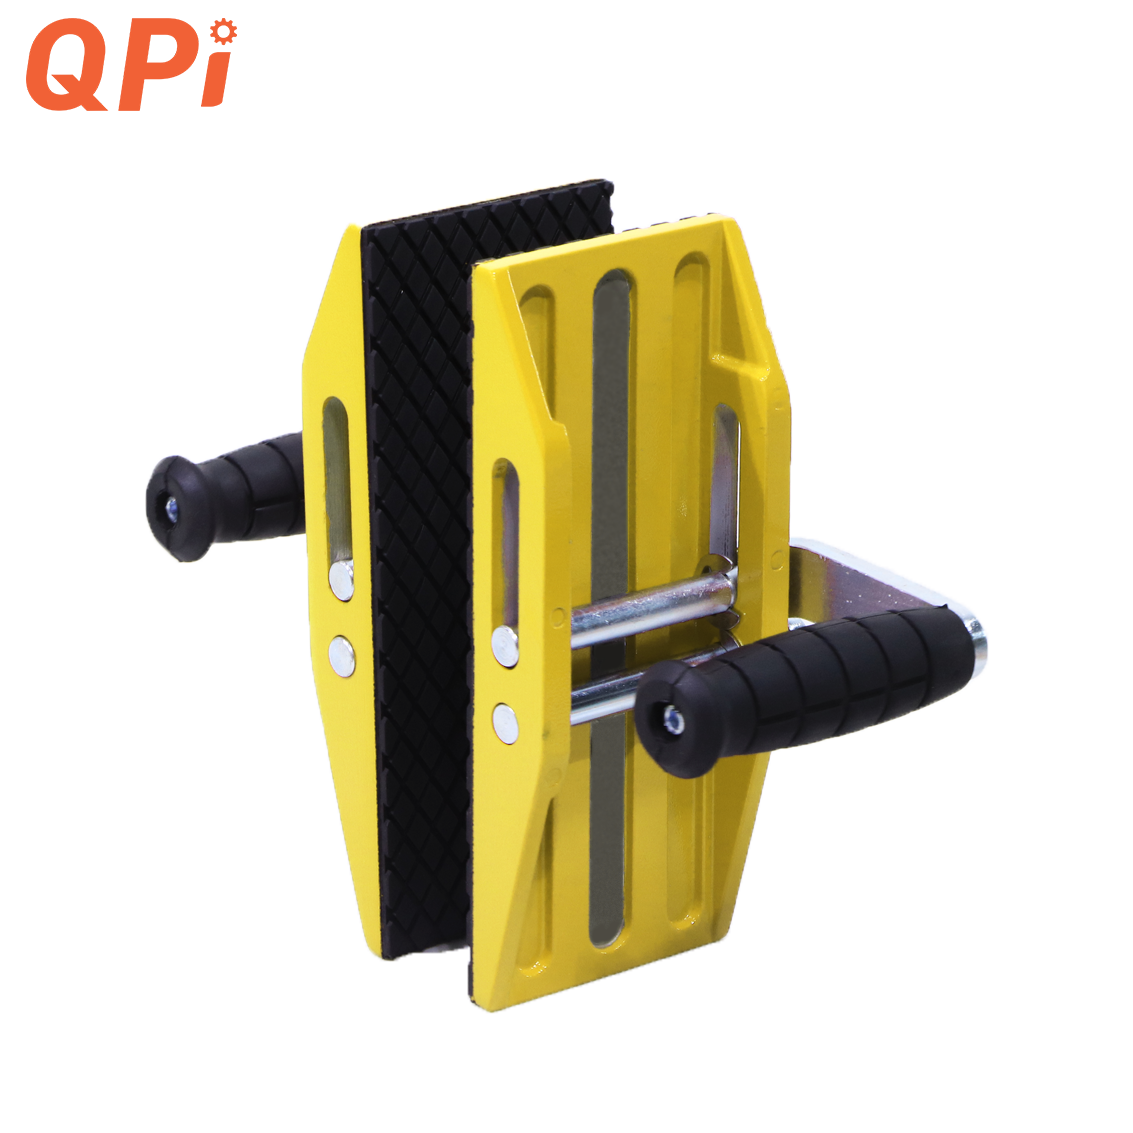 DOUBLE HANDED CARRY CLAMPS / TAY XACH DA DOI / QUAN PHONG STONE CLAMP / GLASS CLAMP